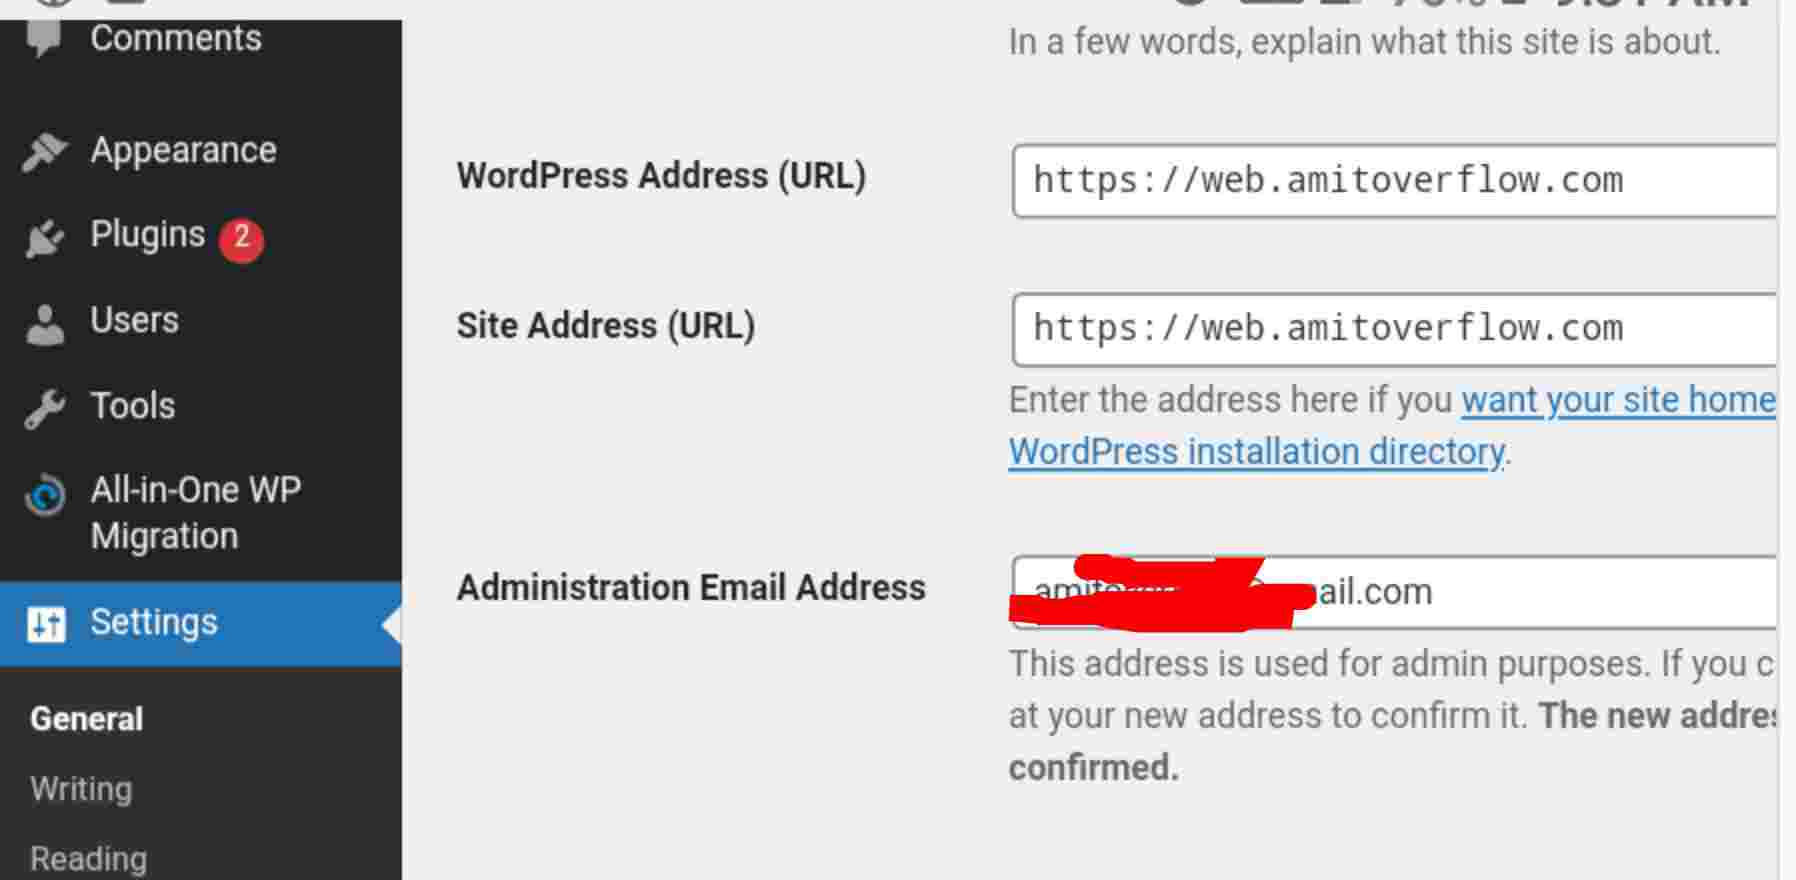 WordPress settings genral